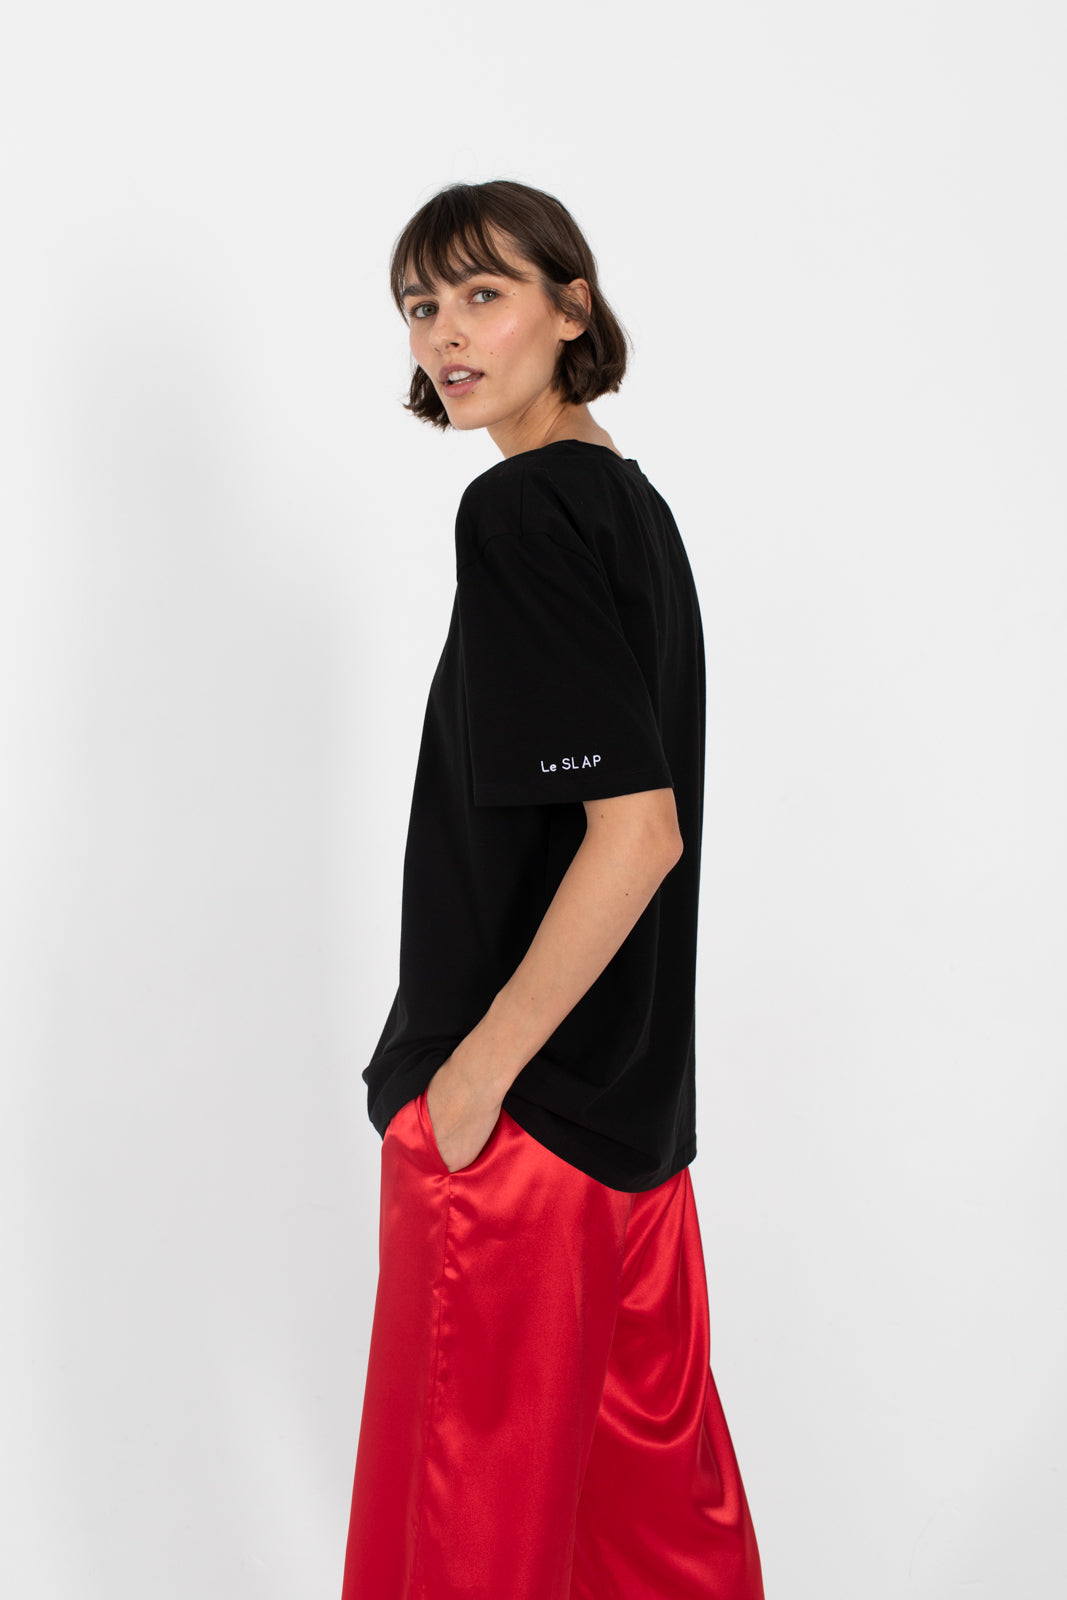 Le SLAP | Black Logo T-shirt